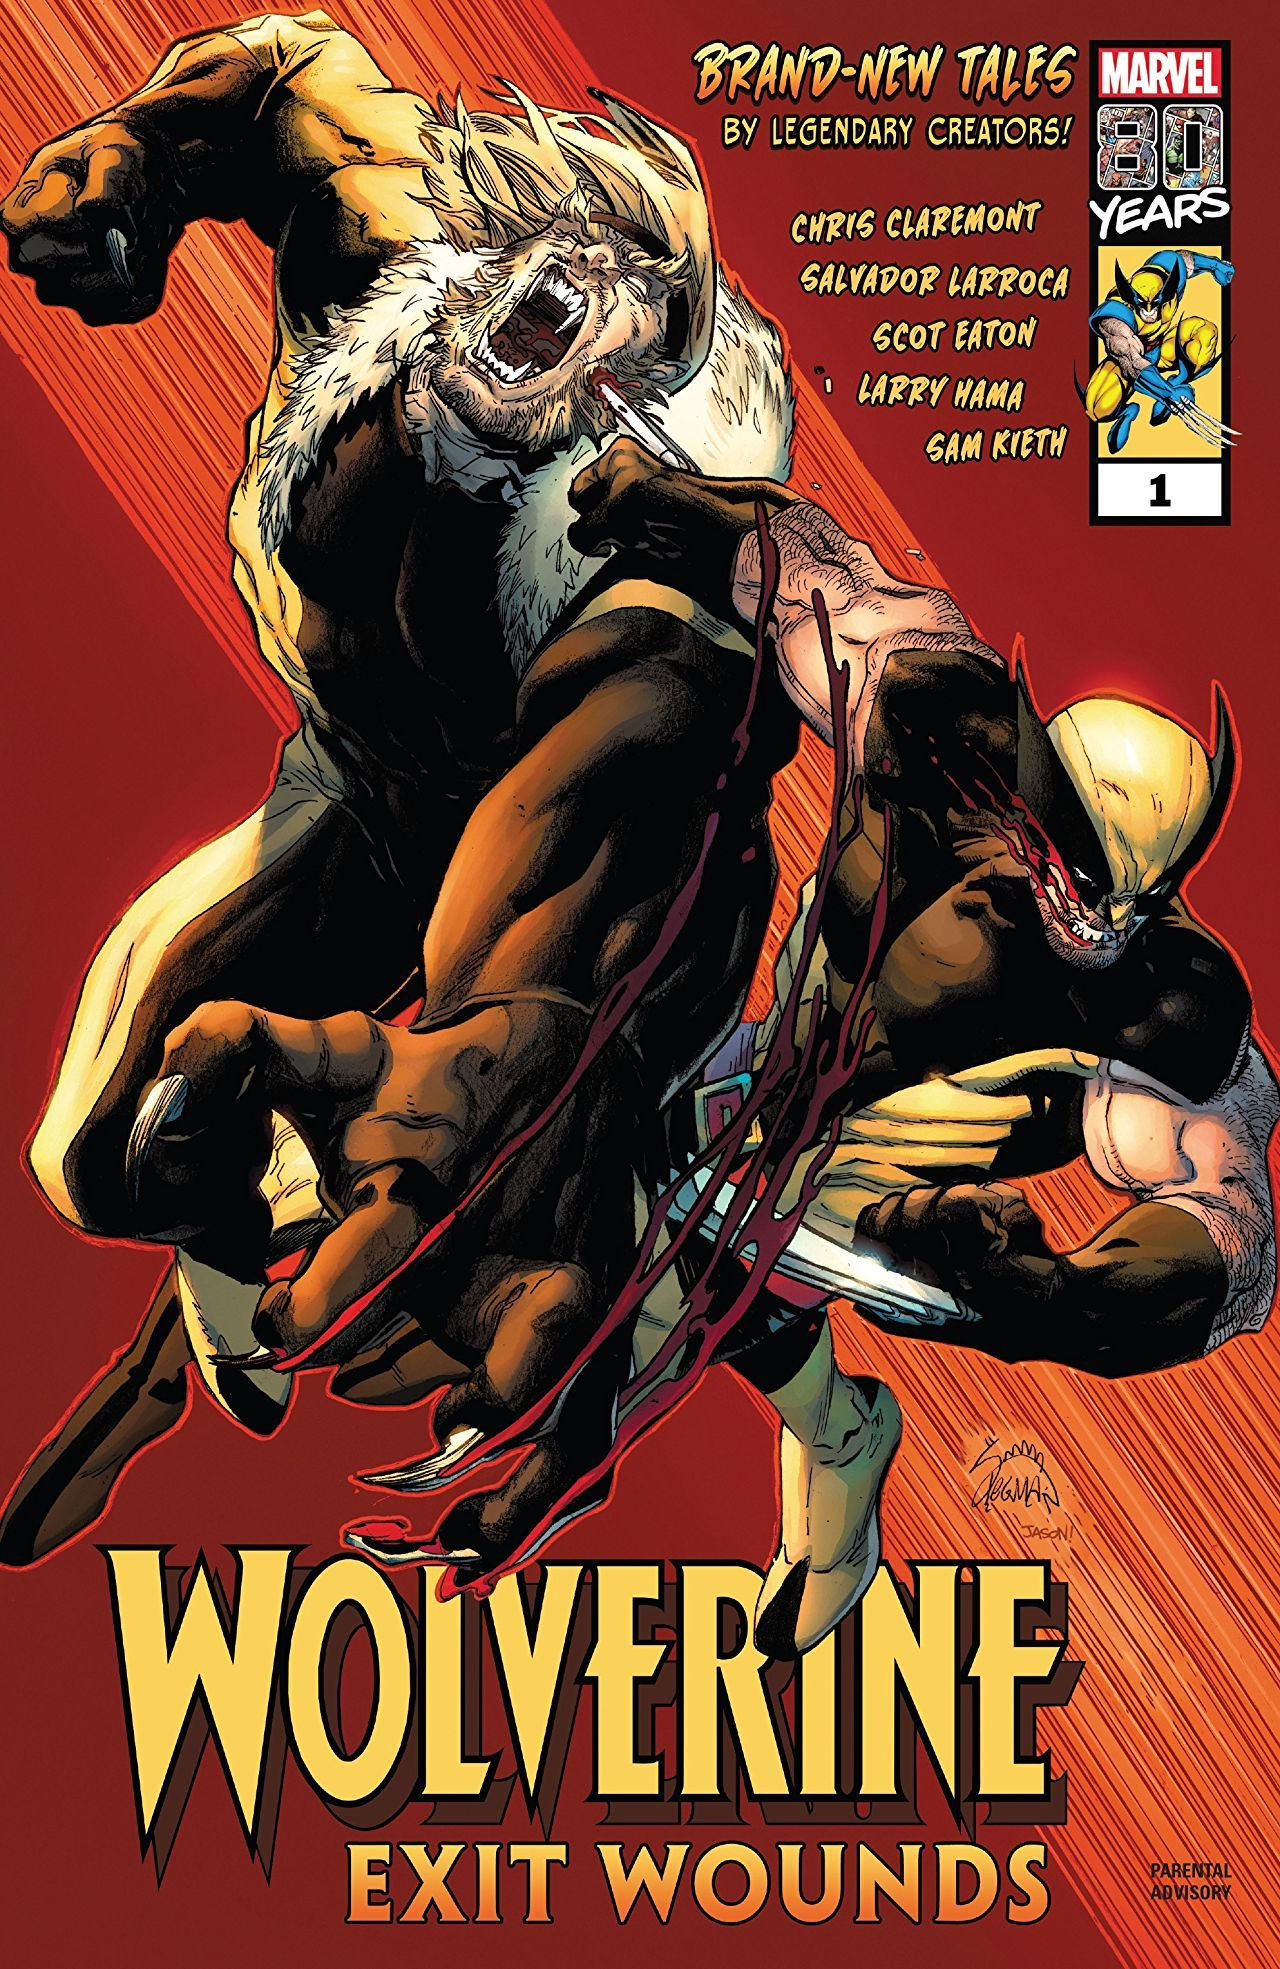 Wolverine: Exit Wounds #1 is a Mixed Bag With a Few Shining Moments